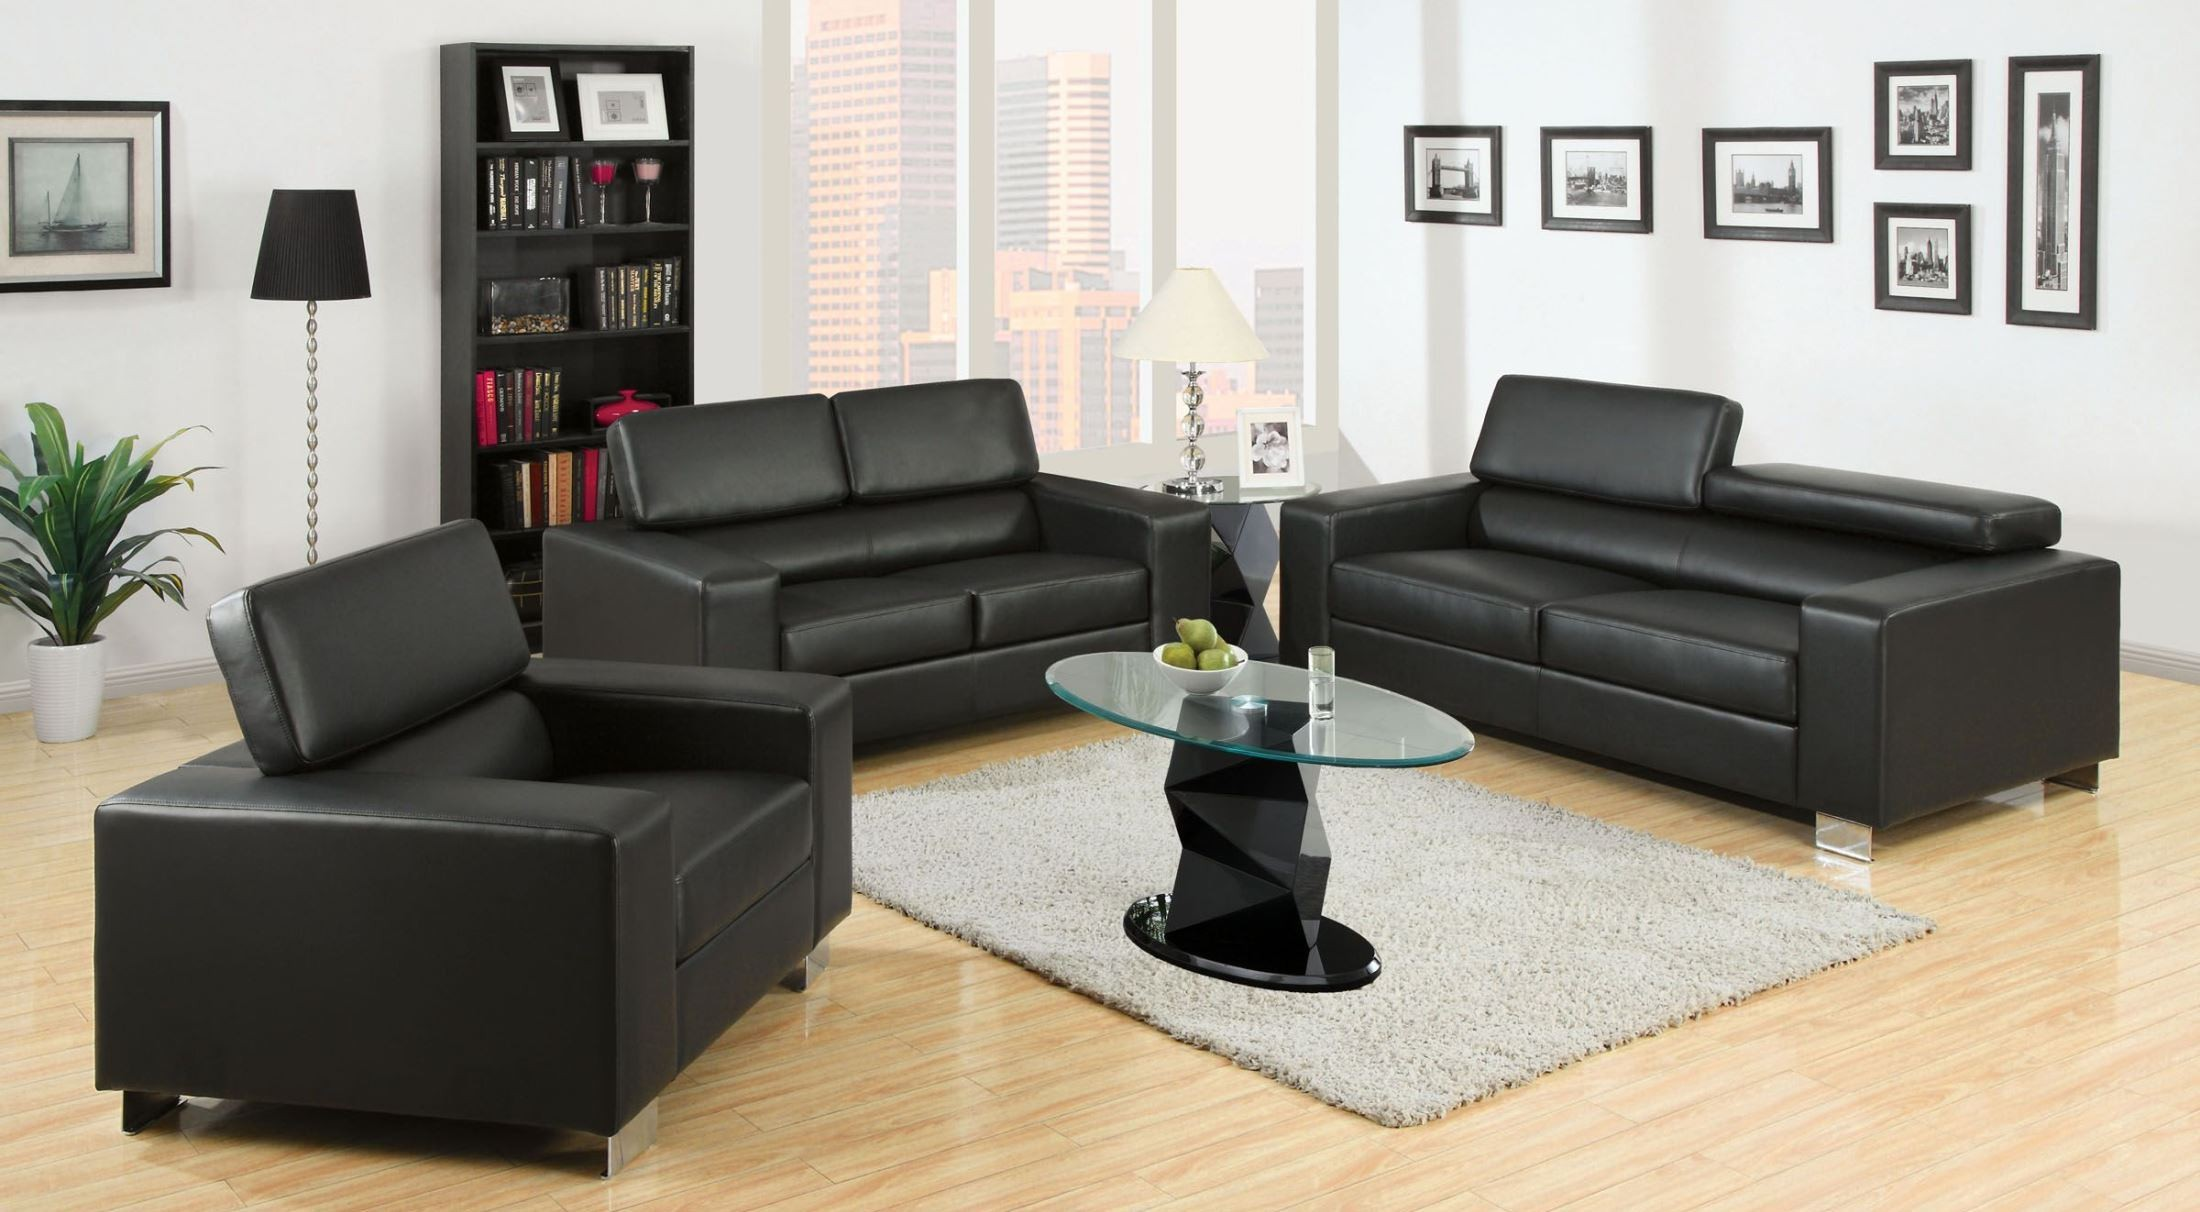 Makri black bonded leather match living room set from for Matching living room furniture sets